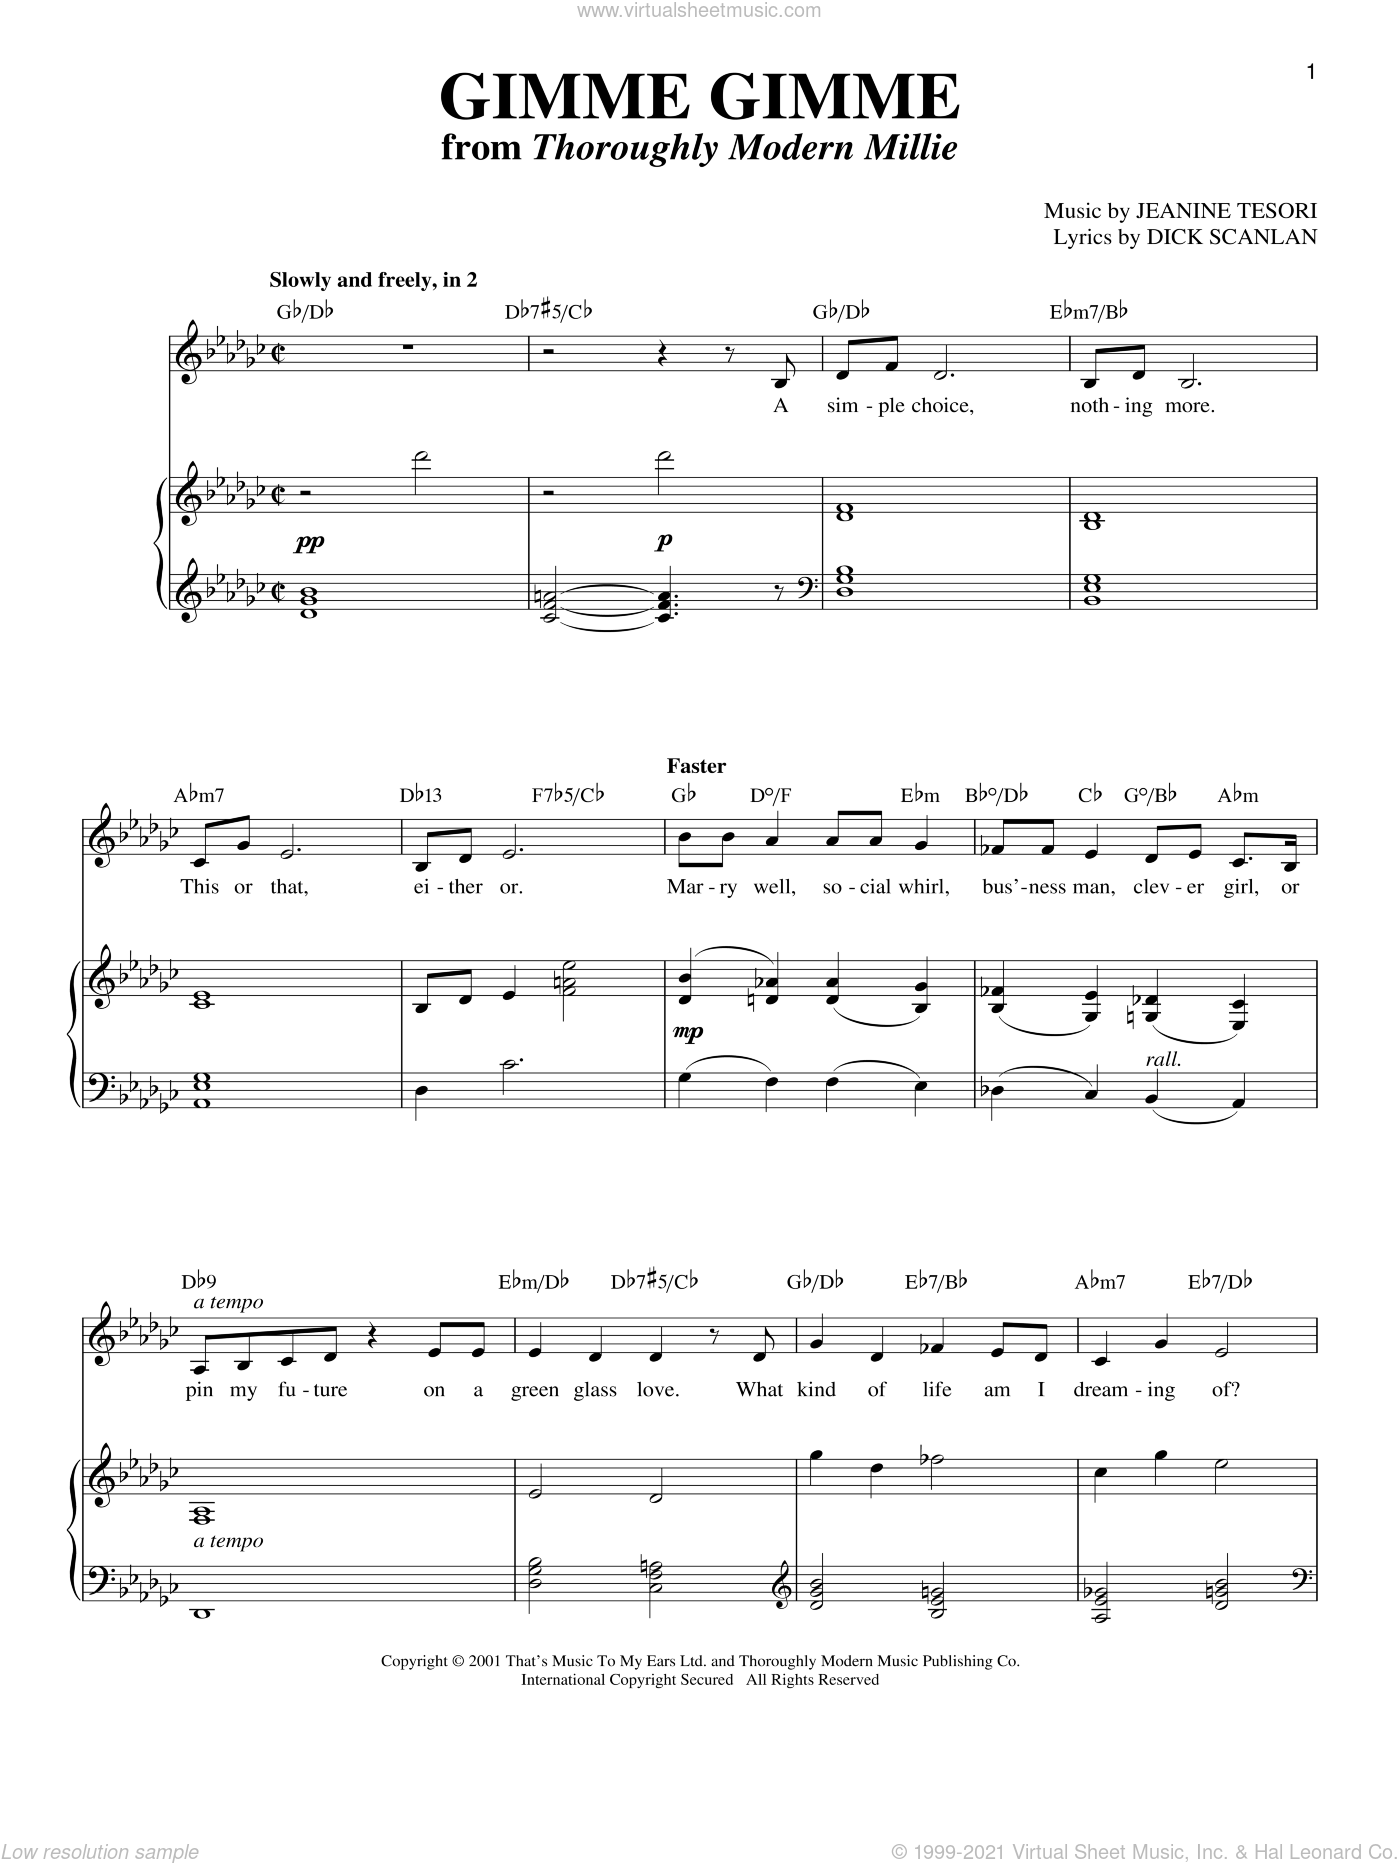 Gimme Gimme sheet music for voice and piano by Dick Scanlan and Jeanine Tesori, intermediate skill level